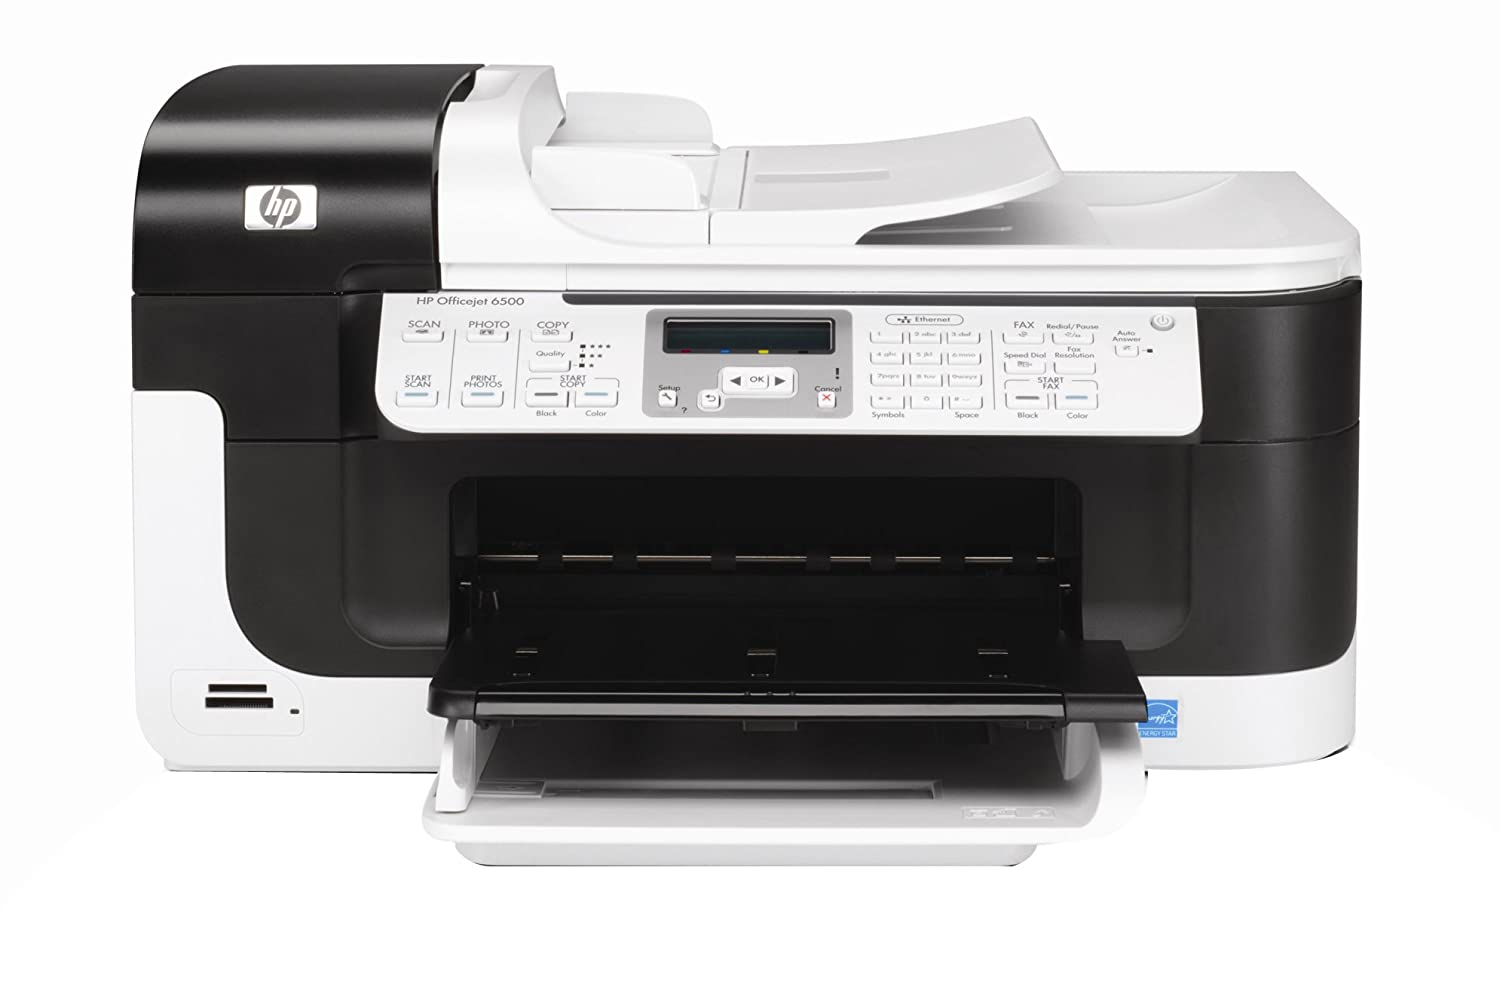 HP Officejet 6500 - Impresora multifunción de tinta color ...